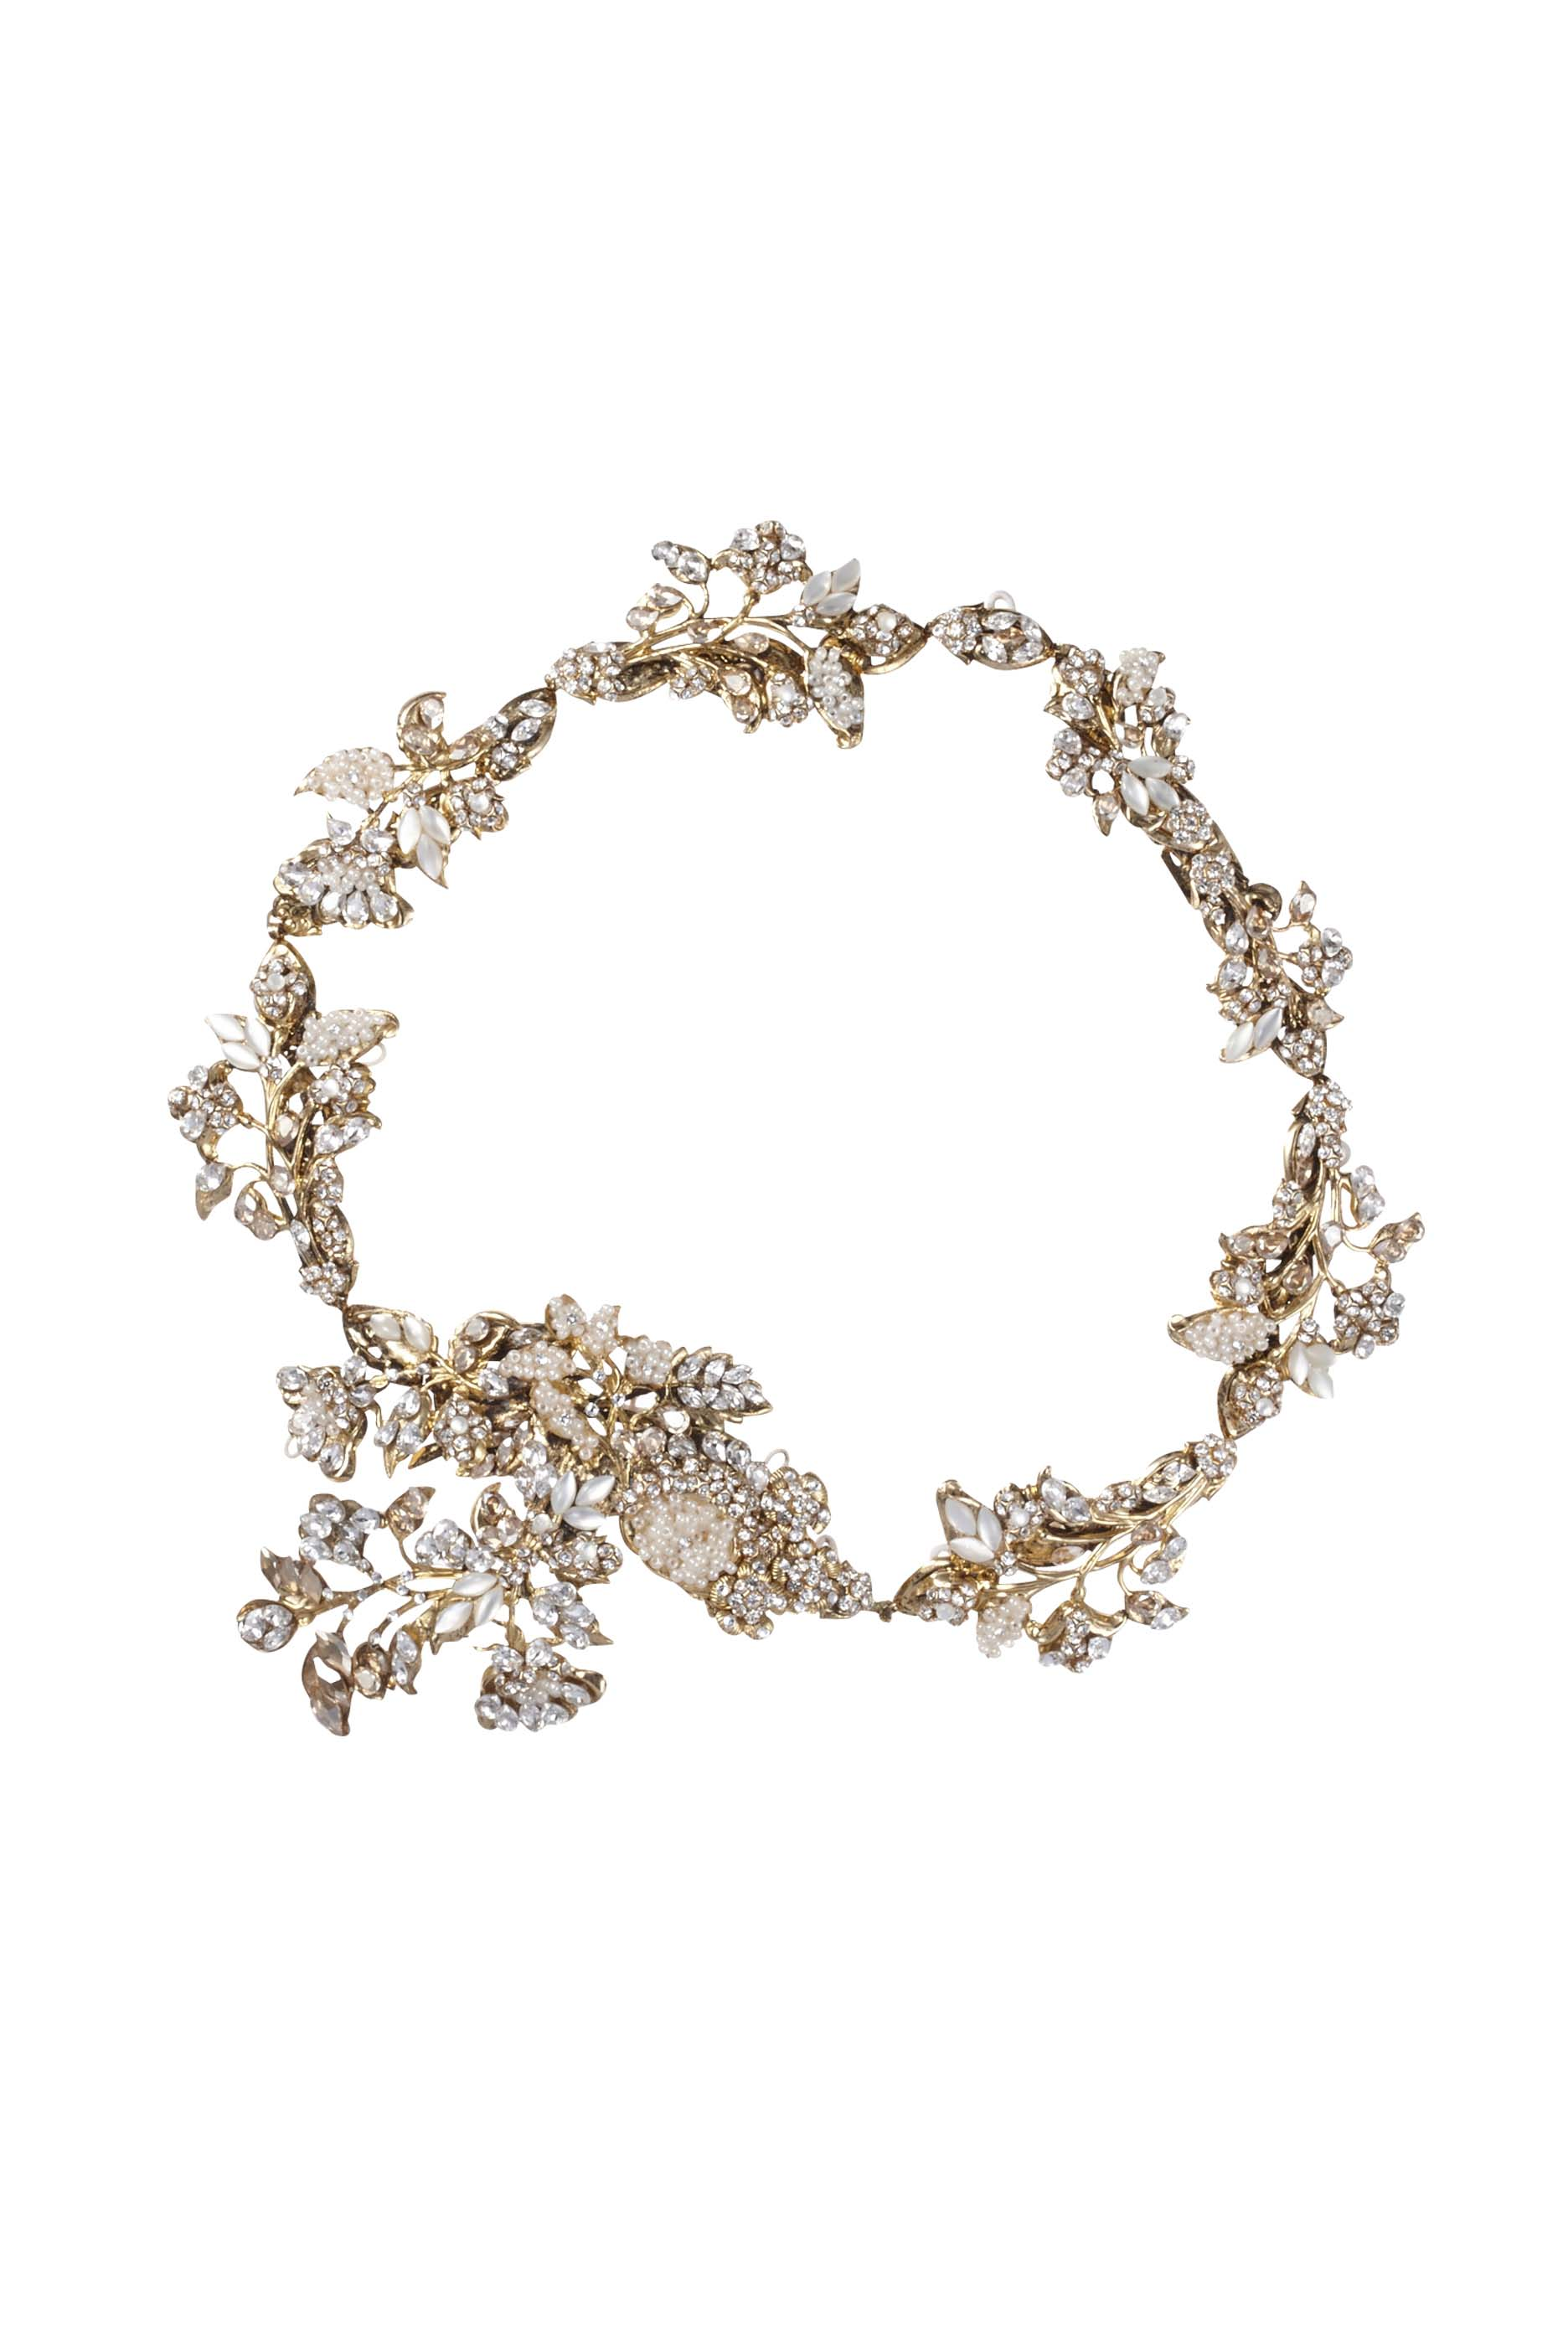 [RENTAL][Iris Headpiece Gold]by MariaElena(参考価格¥162,000)